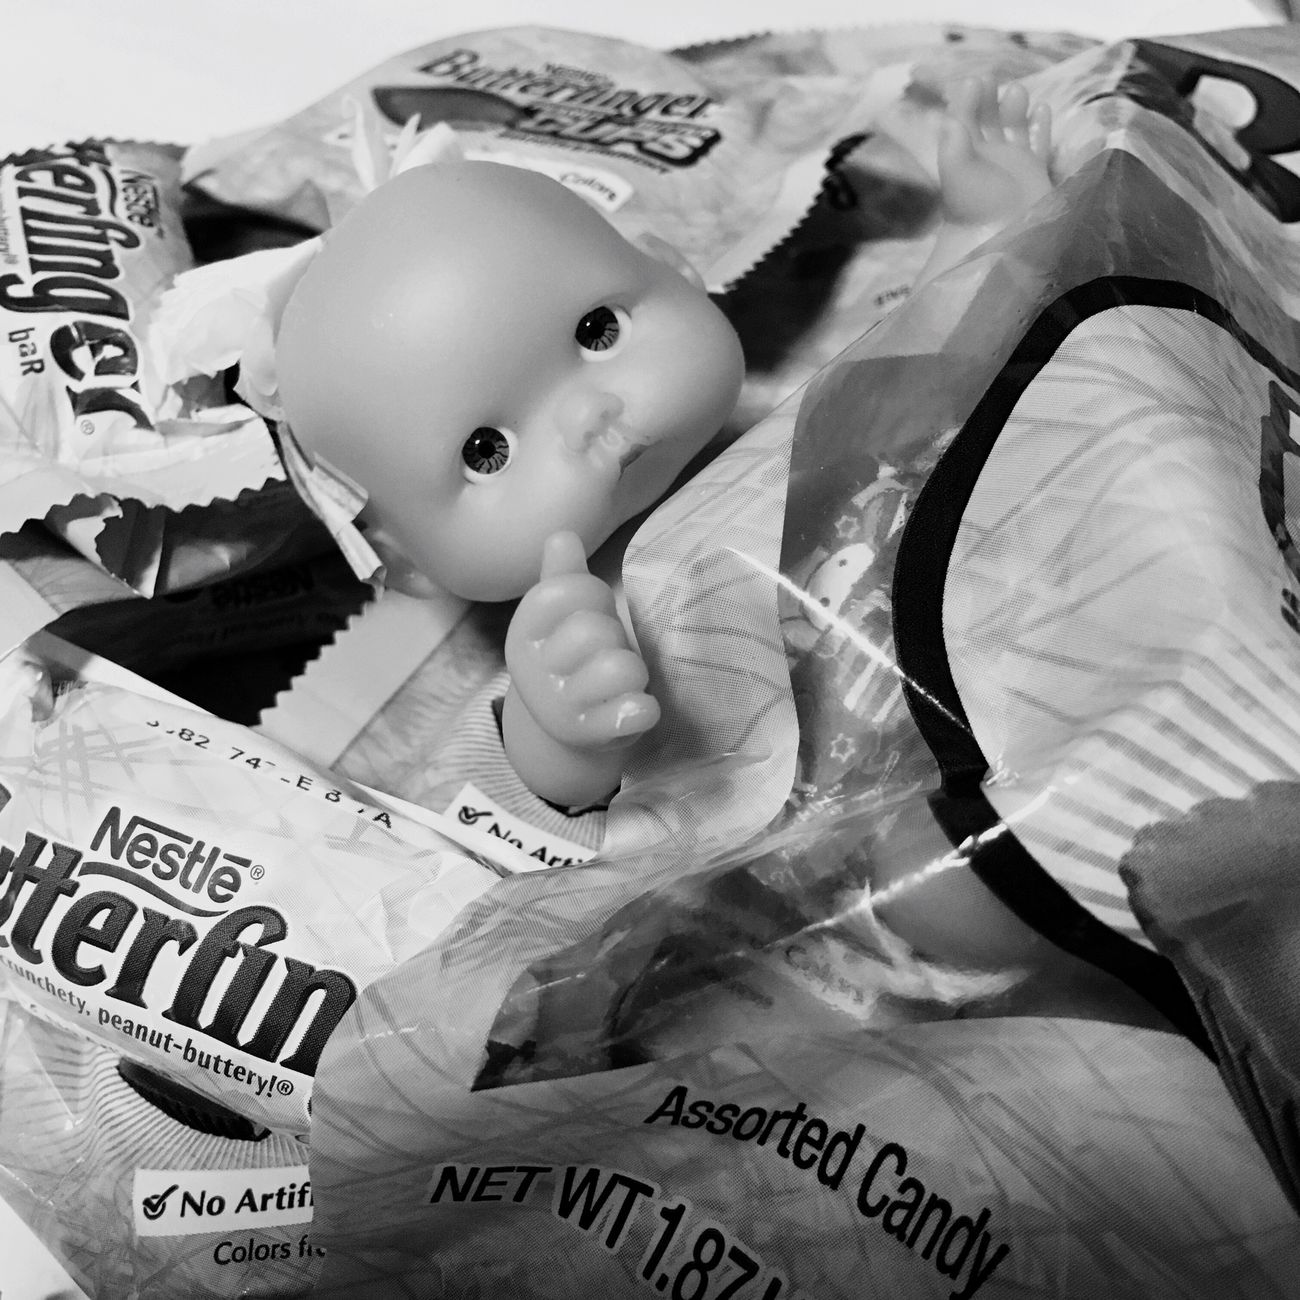 Finding New Frontiers Hello World EyeEm Japan Enjoy Life Baby Doll Black And White Photography Doll Butter Finger